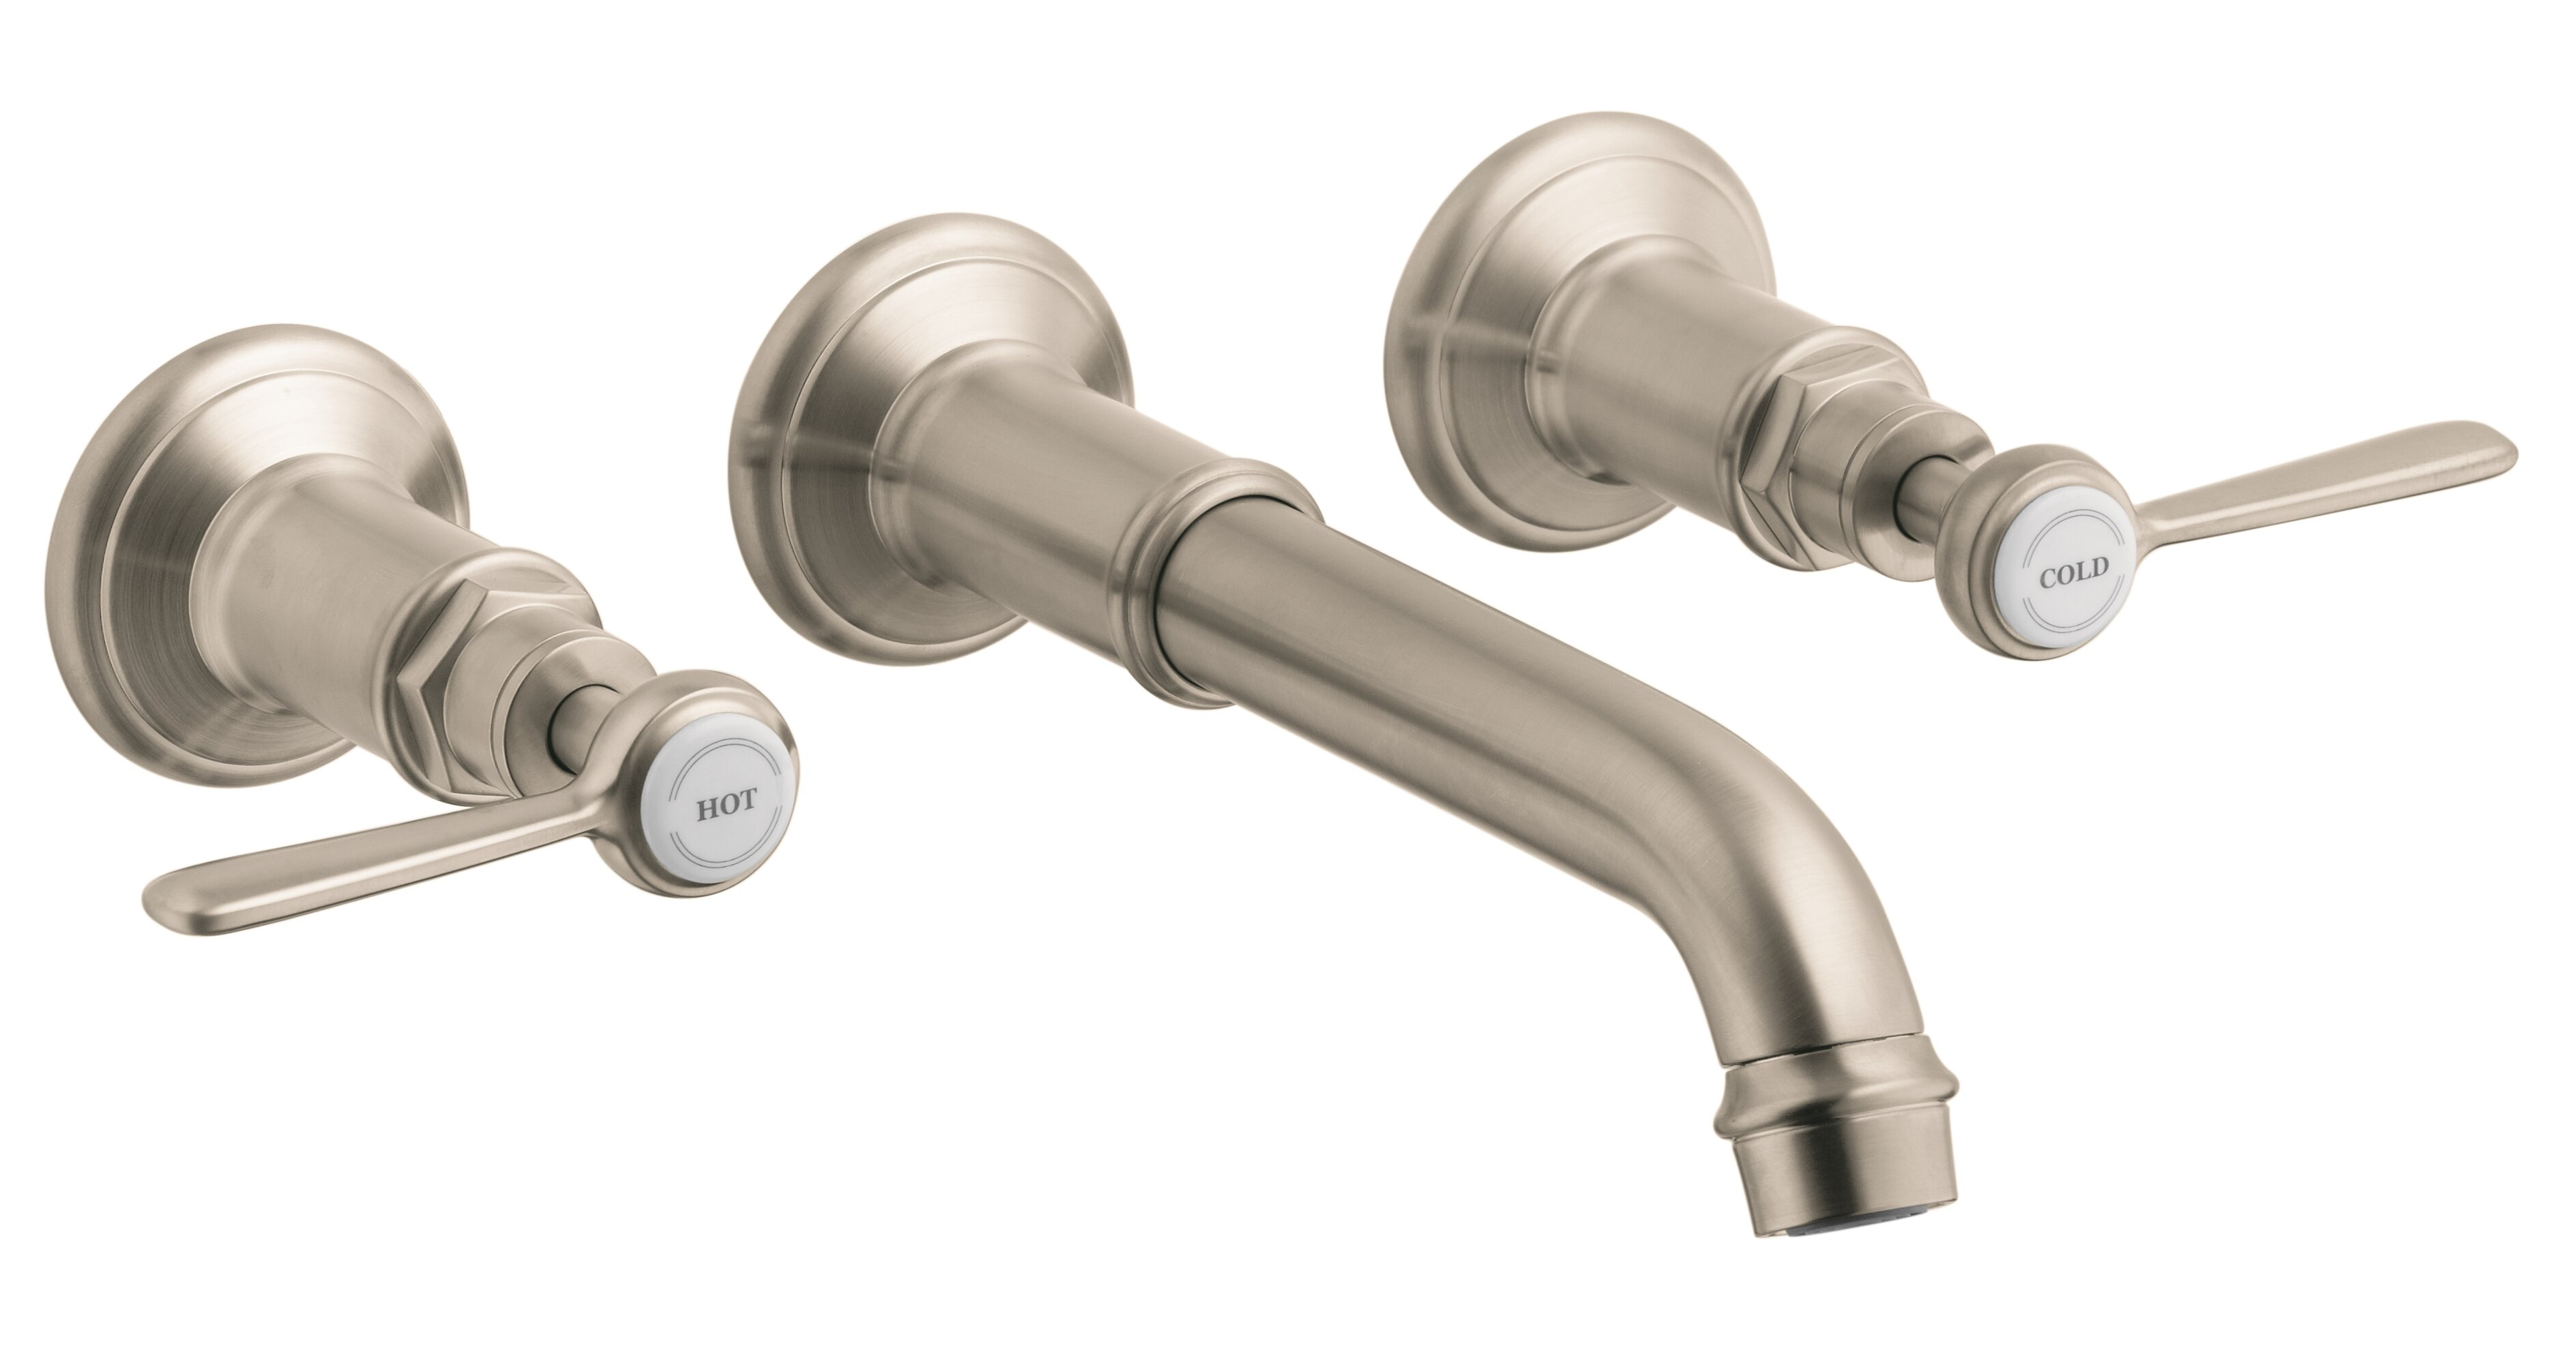 Axor Axor Montreux Two Handle Wall Mounted Sink Faucet | Wayfair